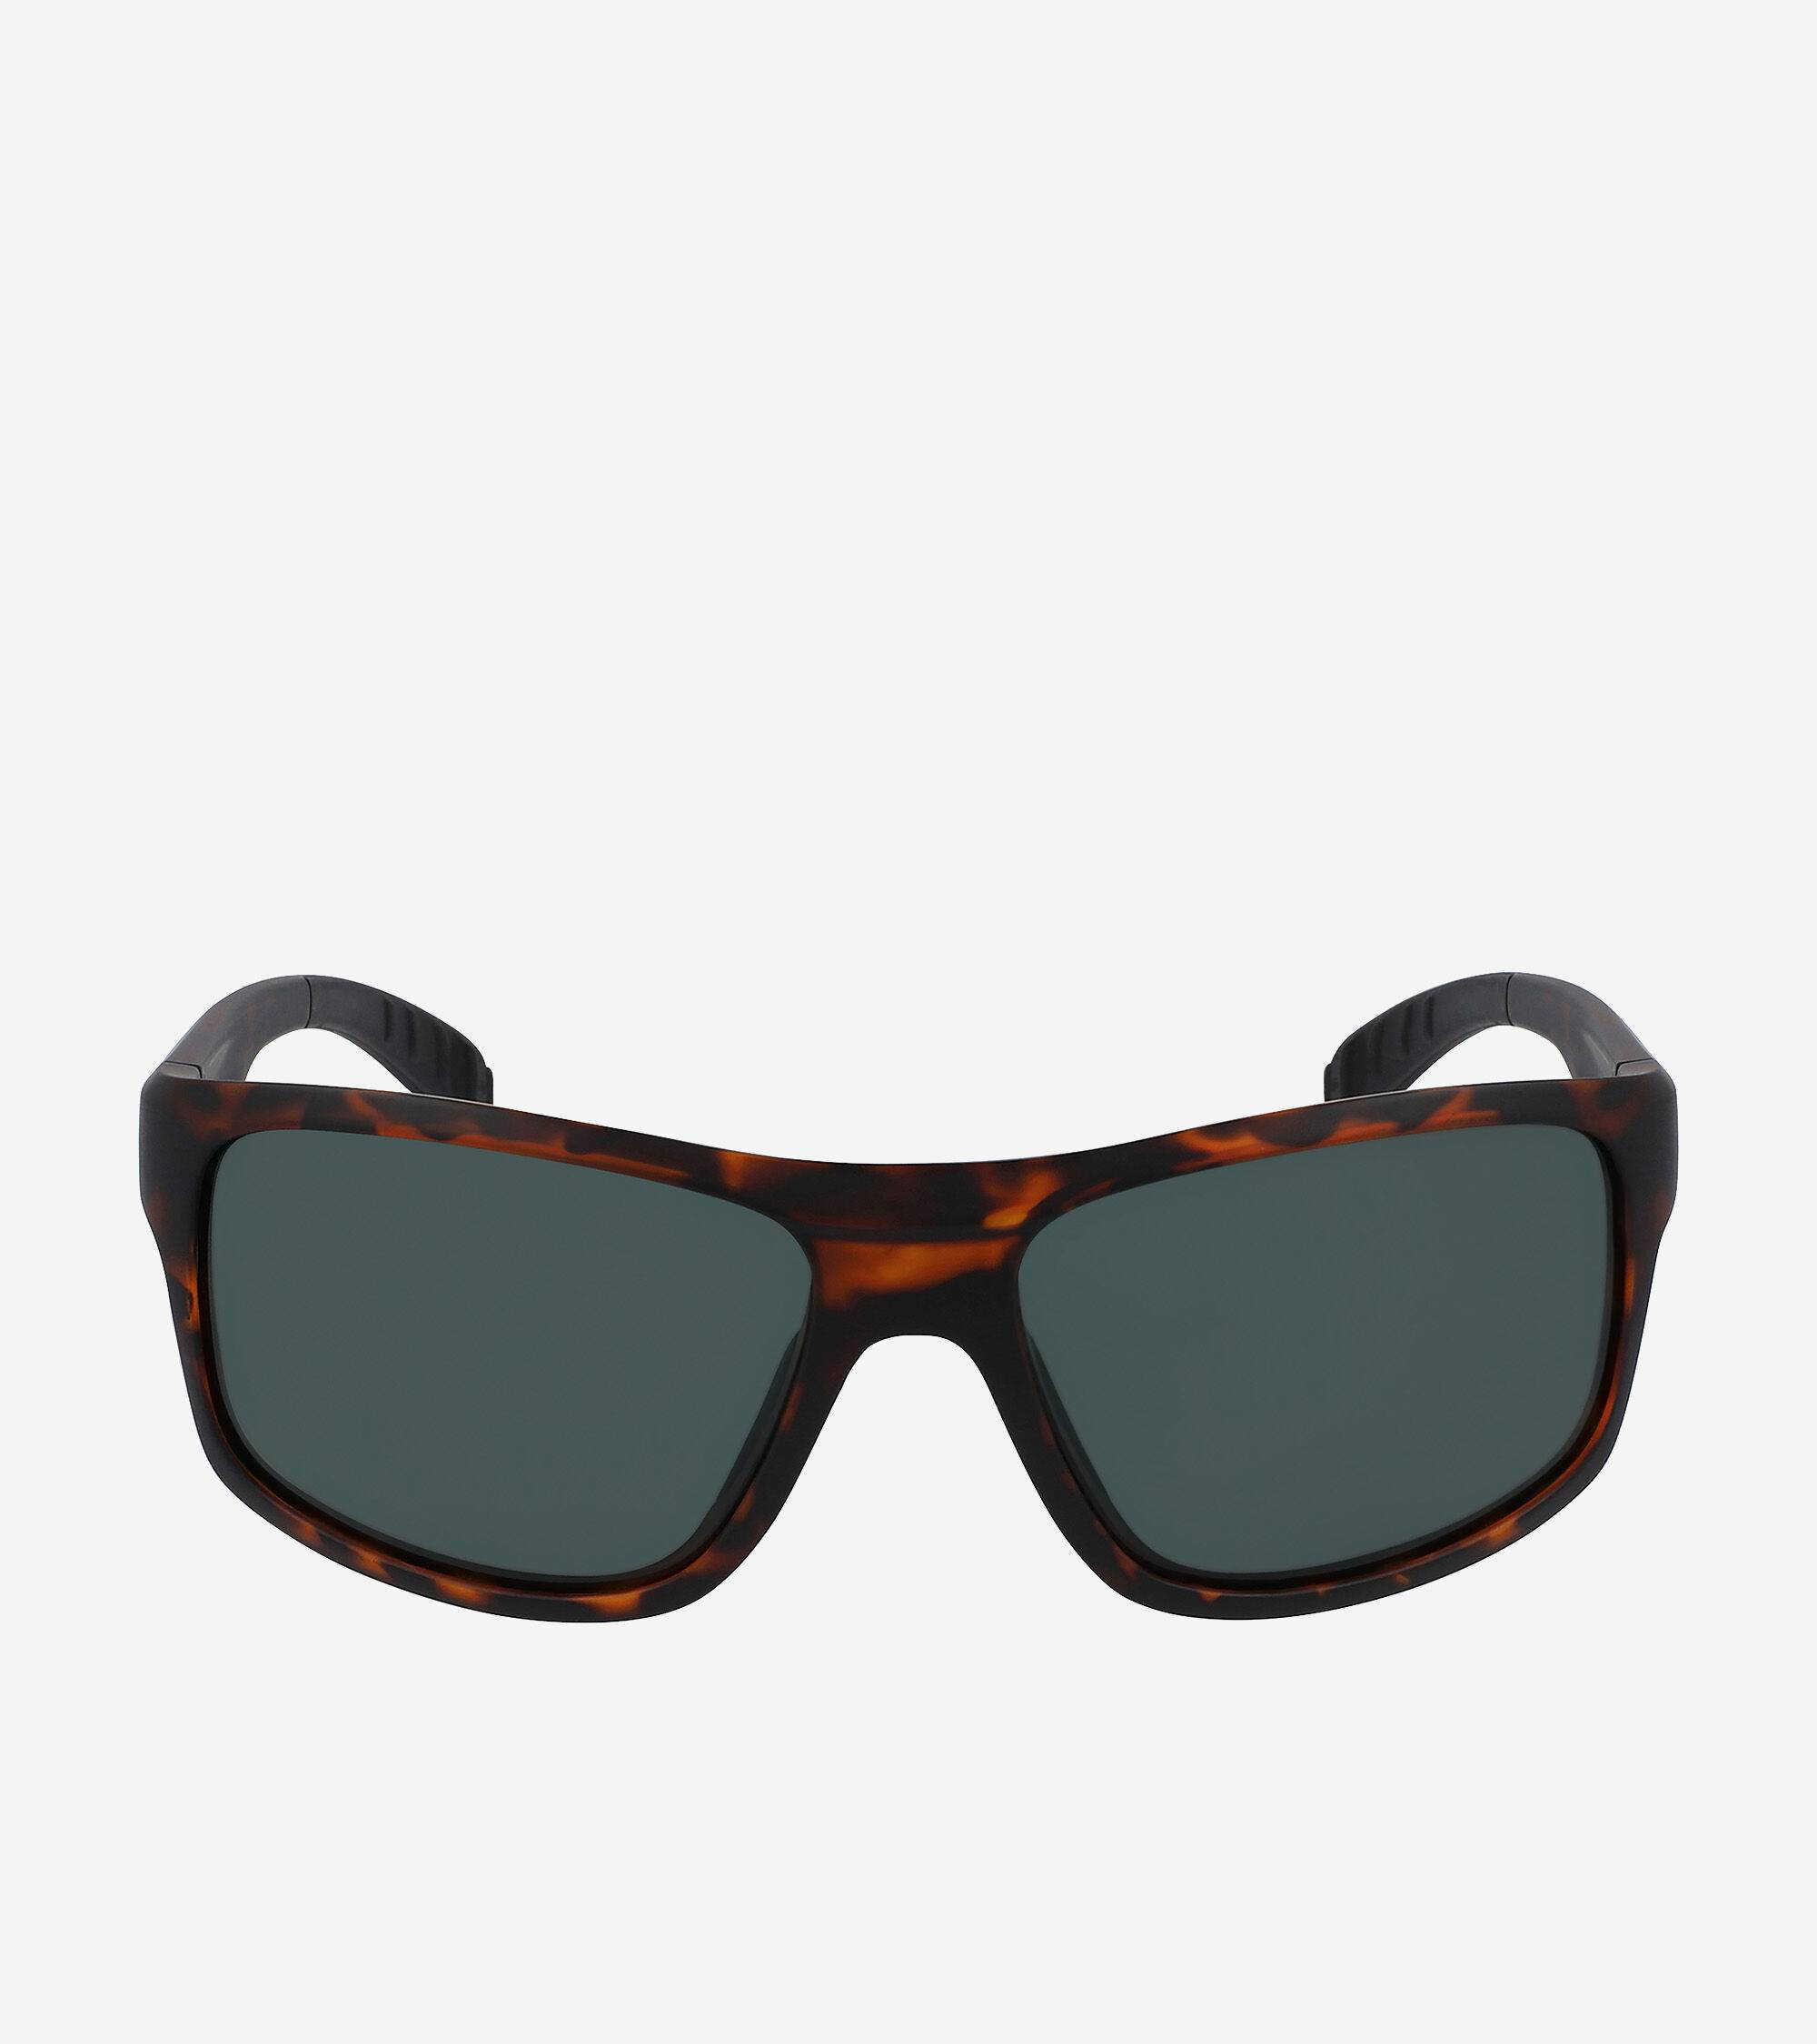 Cole Haan Sport Square Sunglasses - BROWN - Size: OSFA